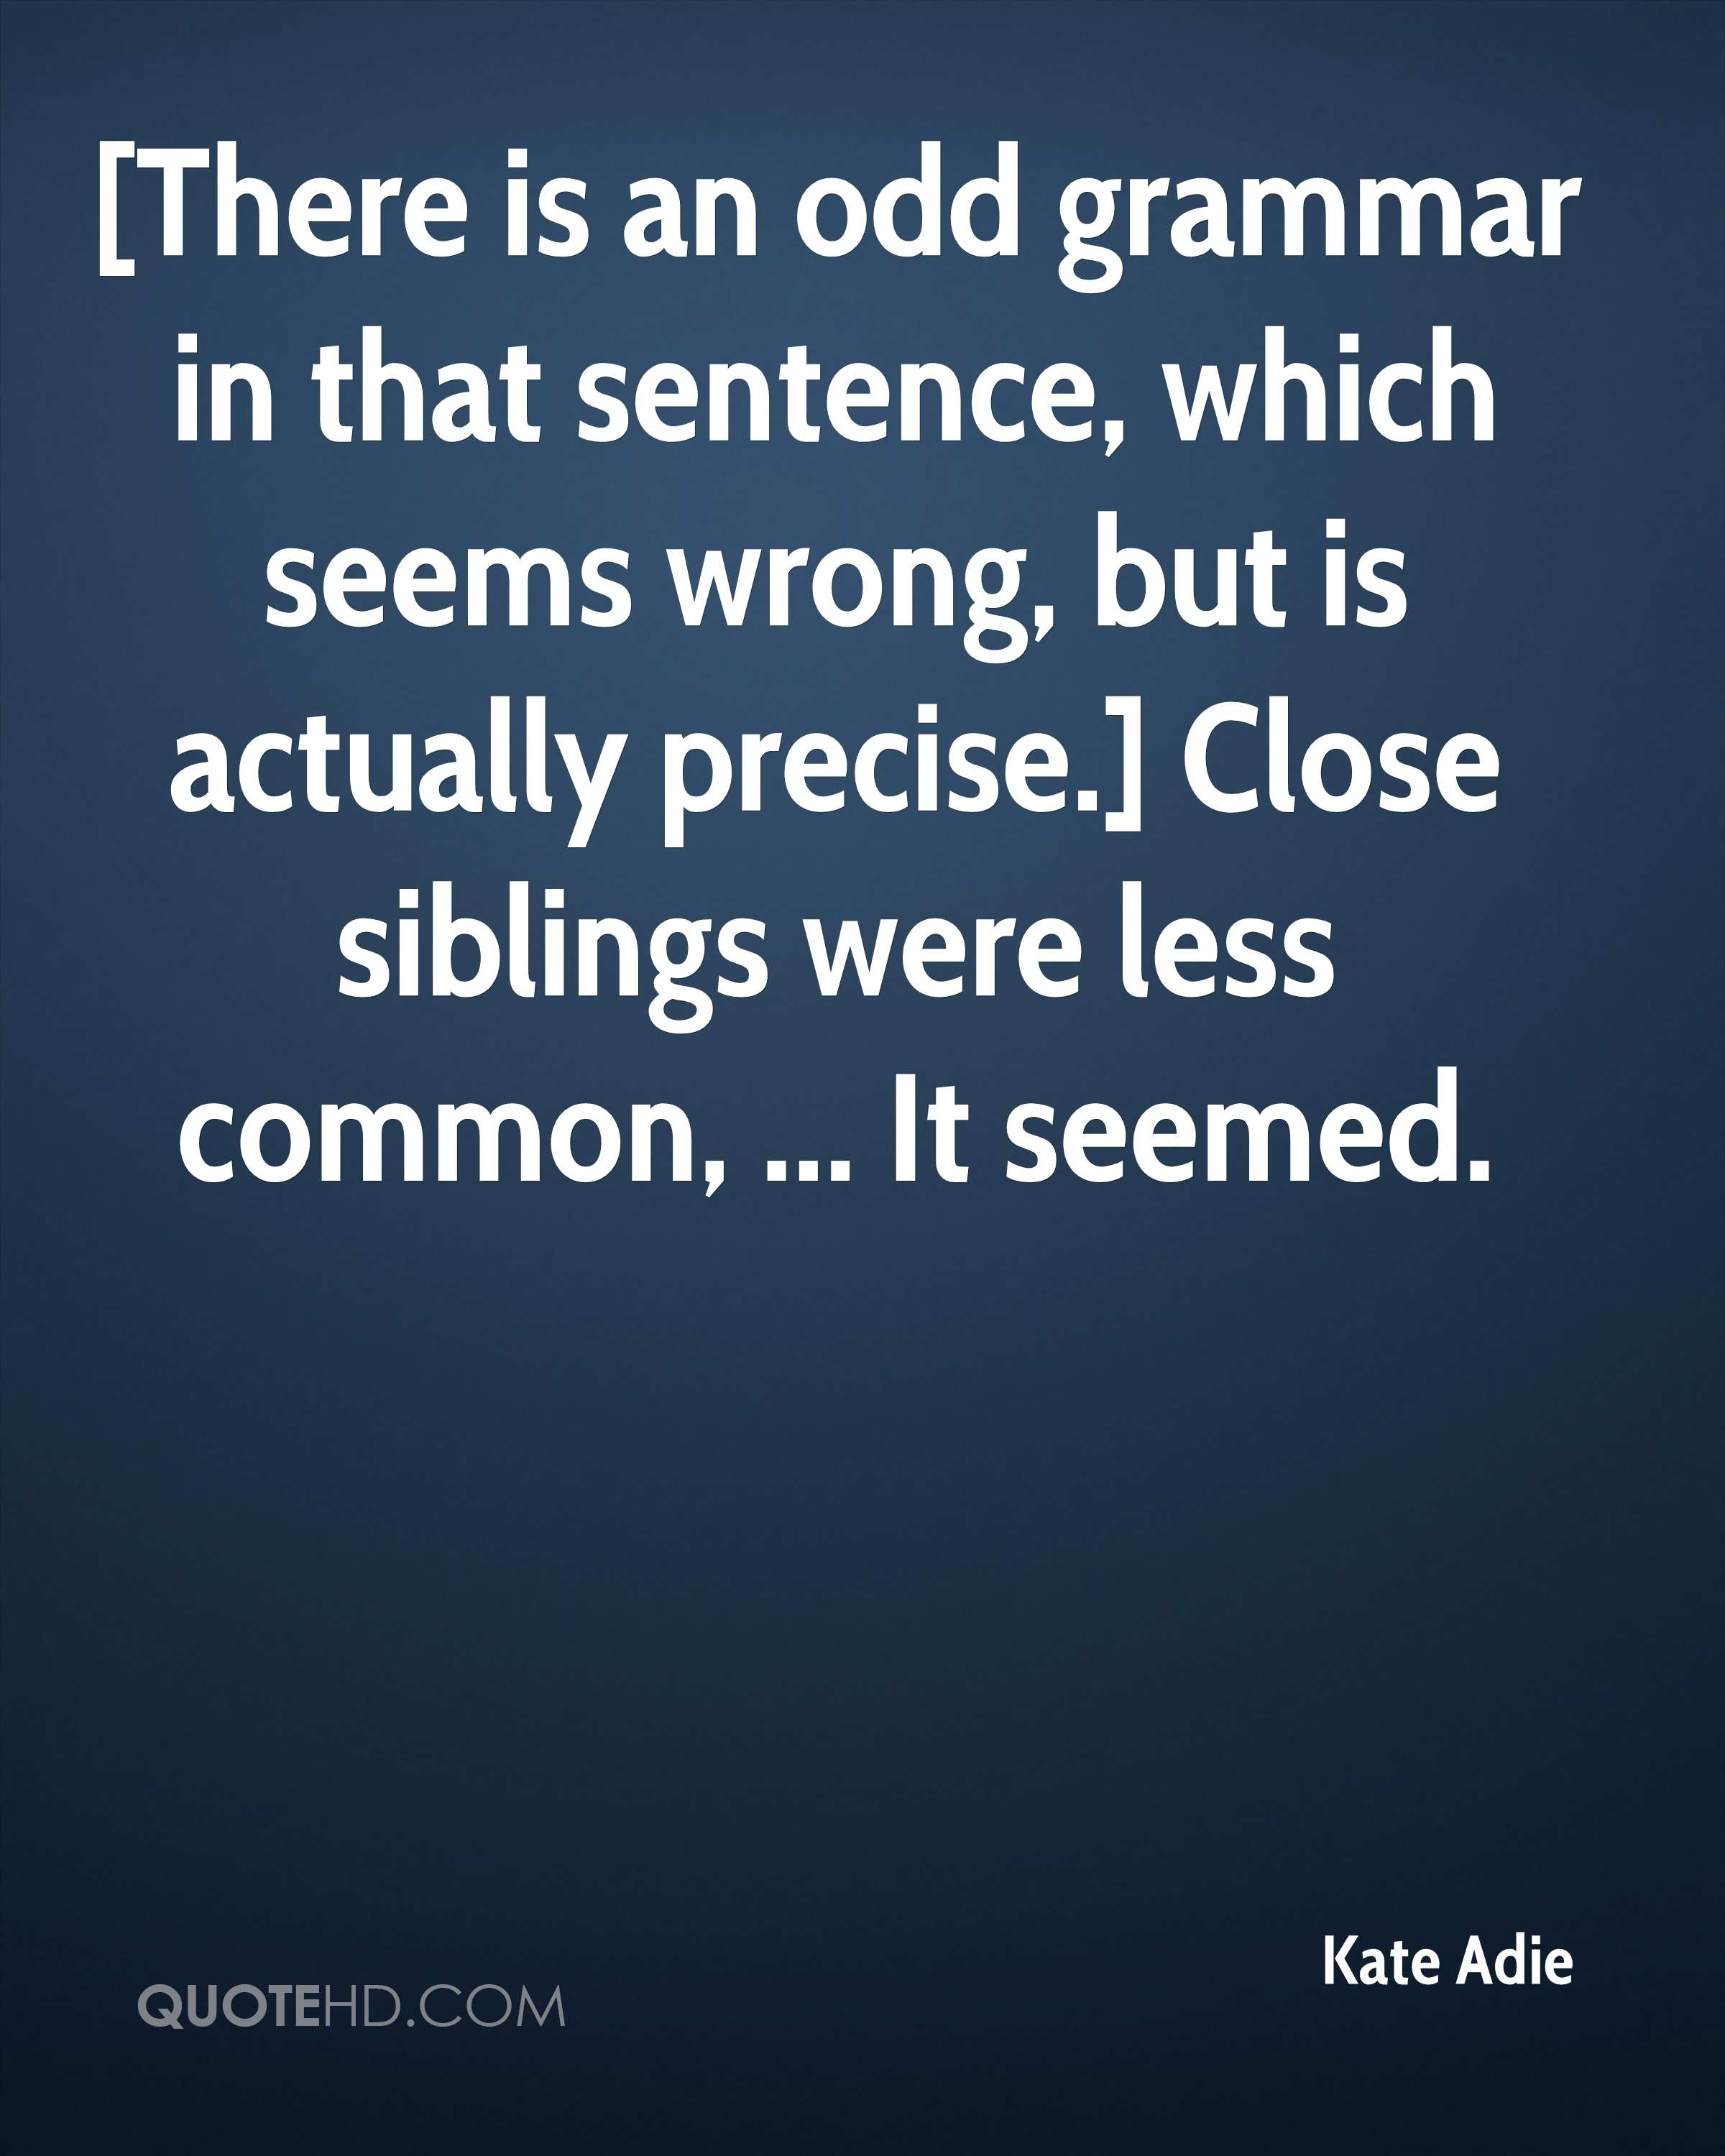 [There is an odd grammar in that sentence, which seems wrong, but is actually precise.] Close siblings were less common, ... It seemed.